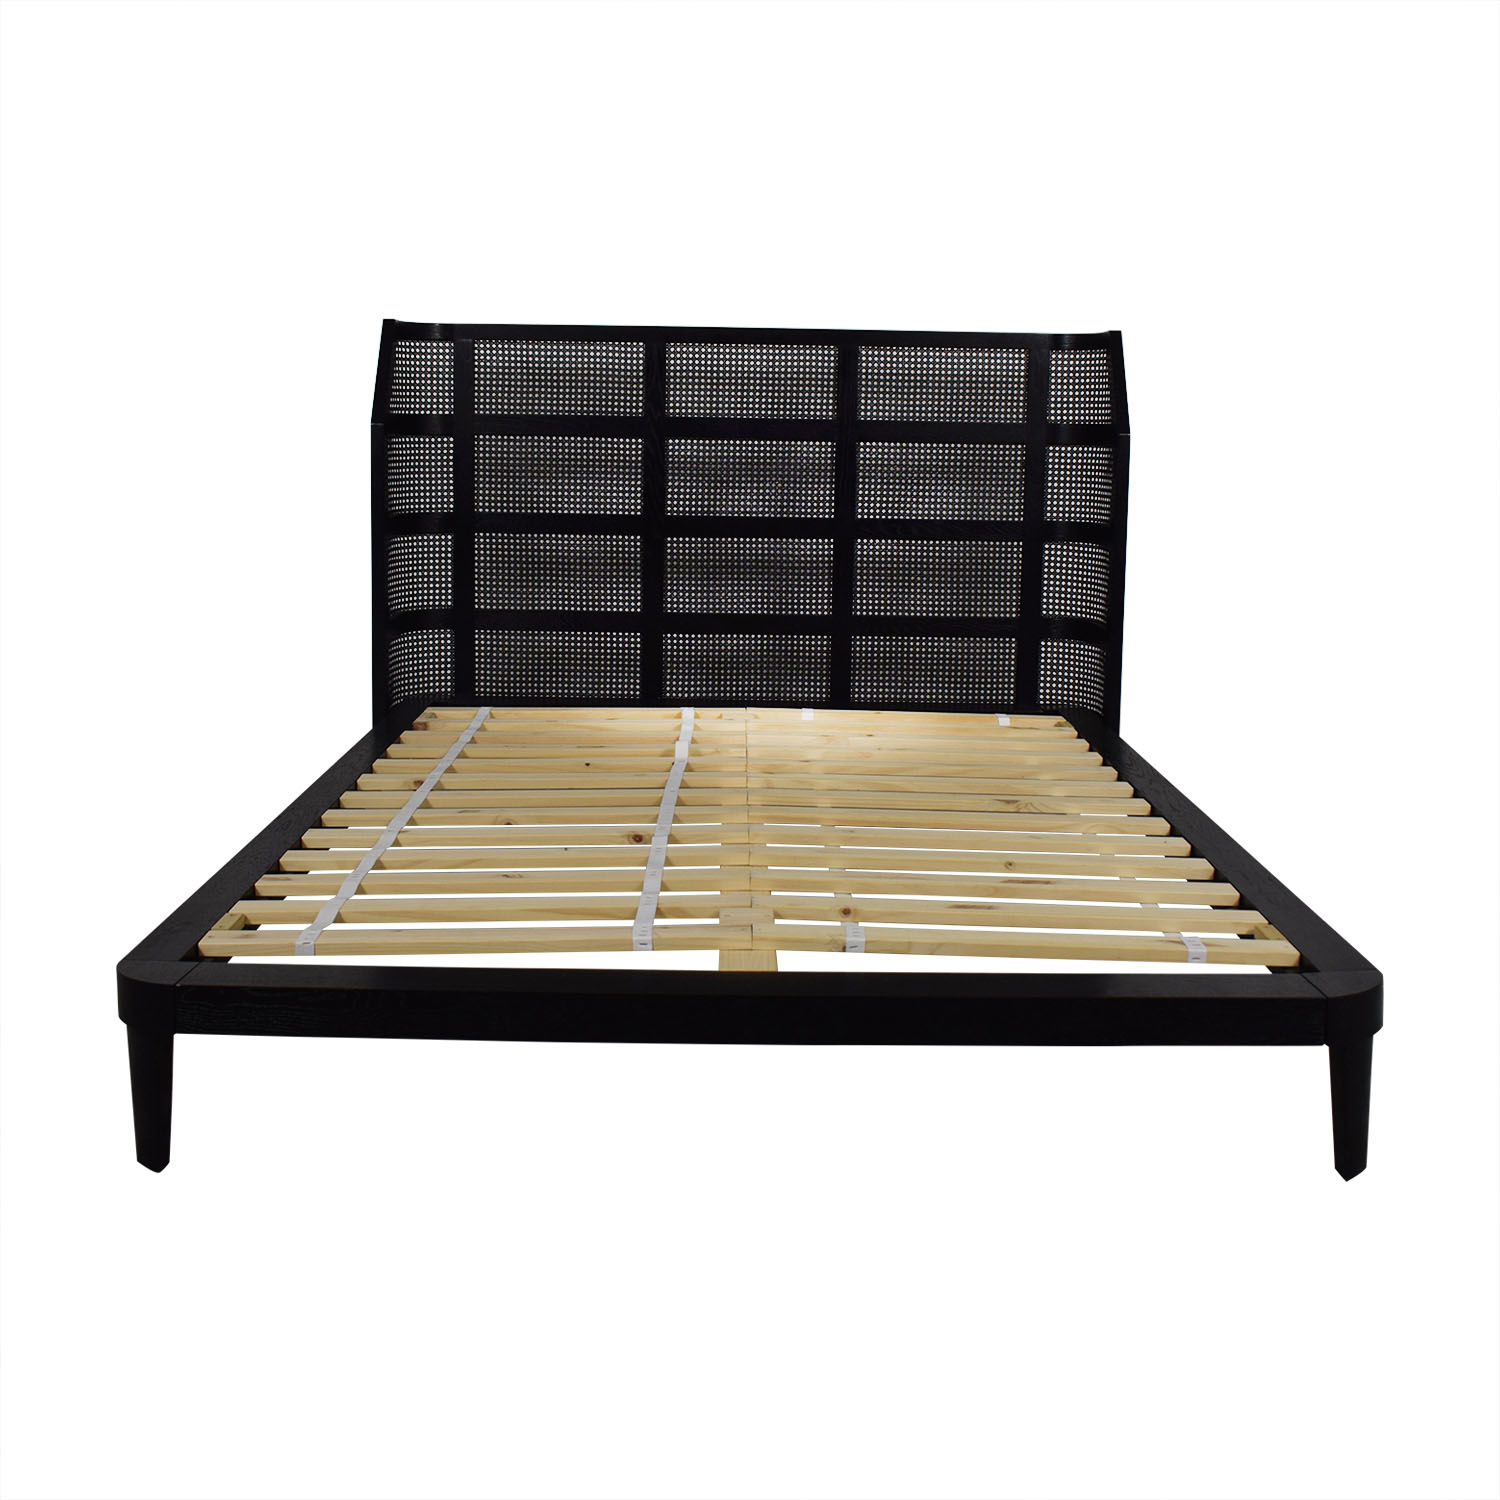 buy CB2 Seville Full Bed CB2 Bed Frames